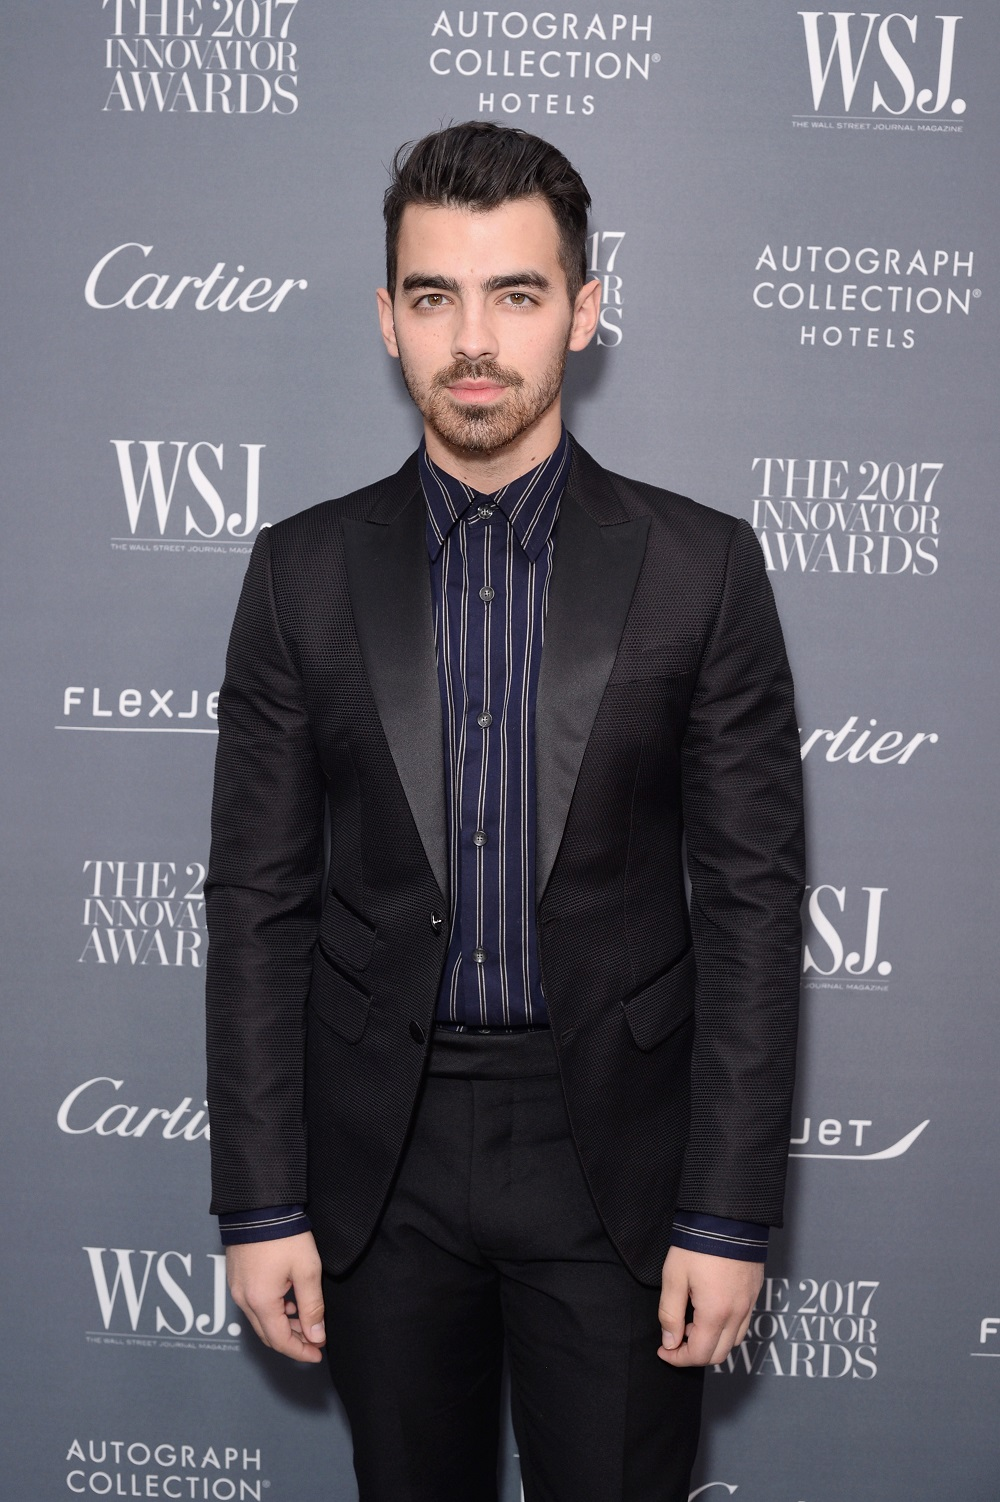 WSJ Magazine innovator awards, joe jonas